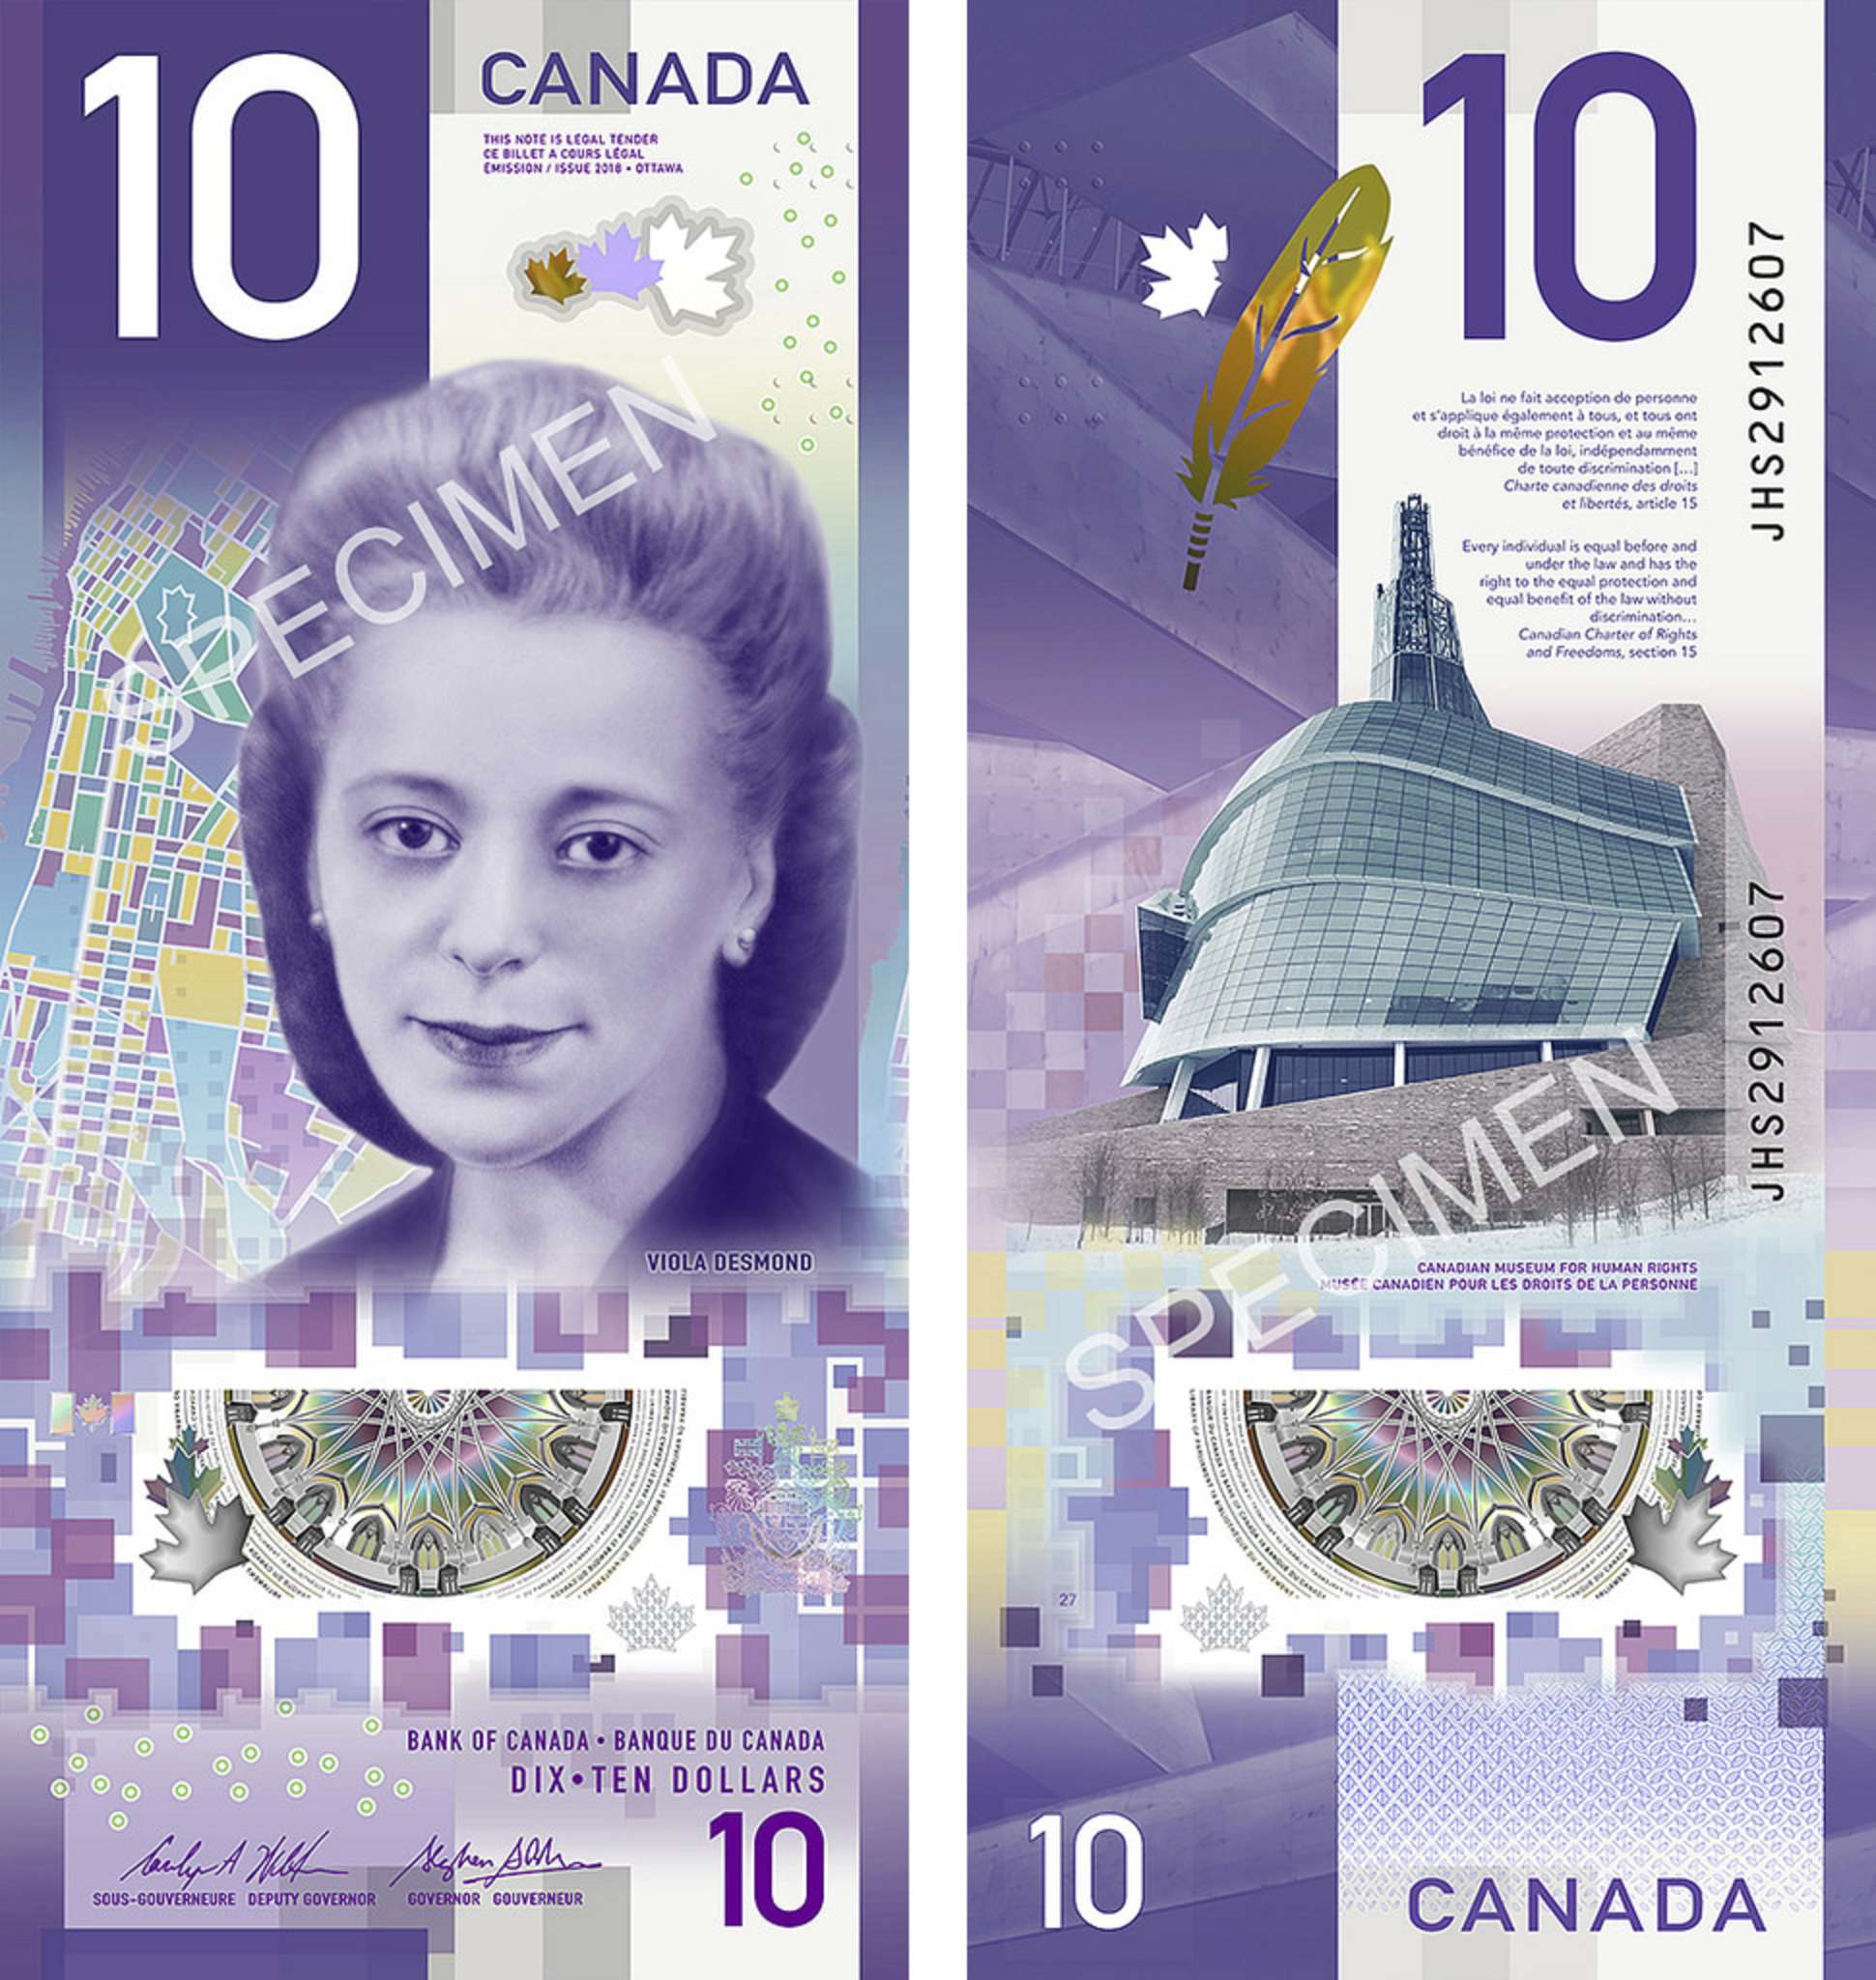 It's Official, Canada Reveals All-New $10 Bill